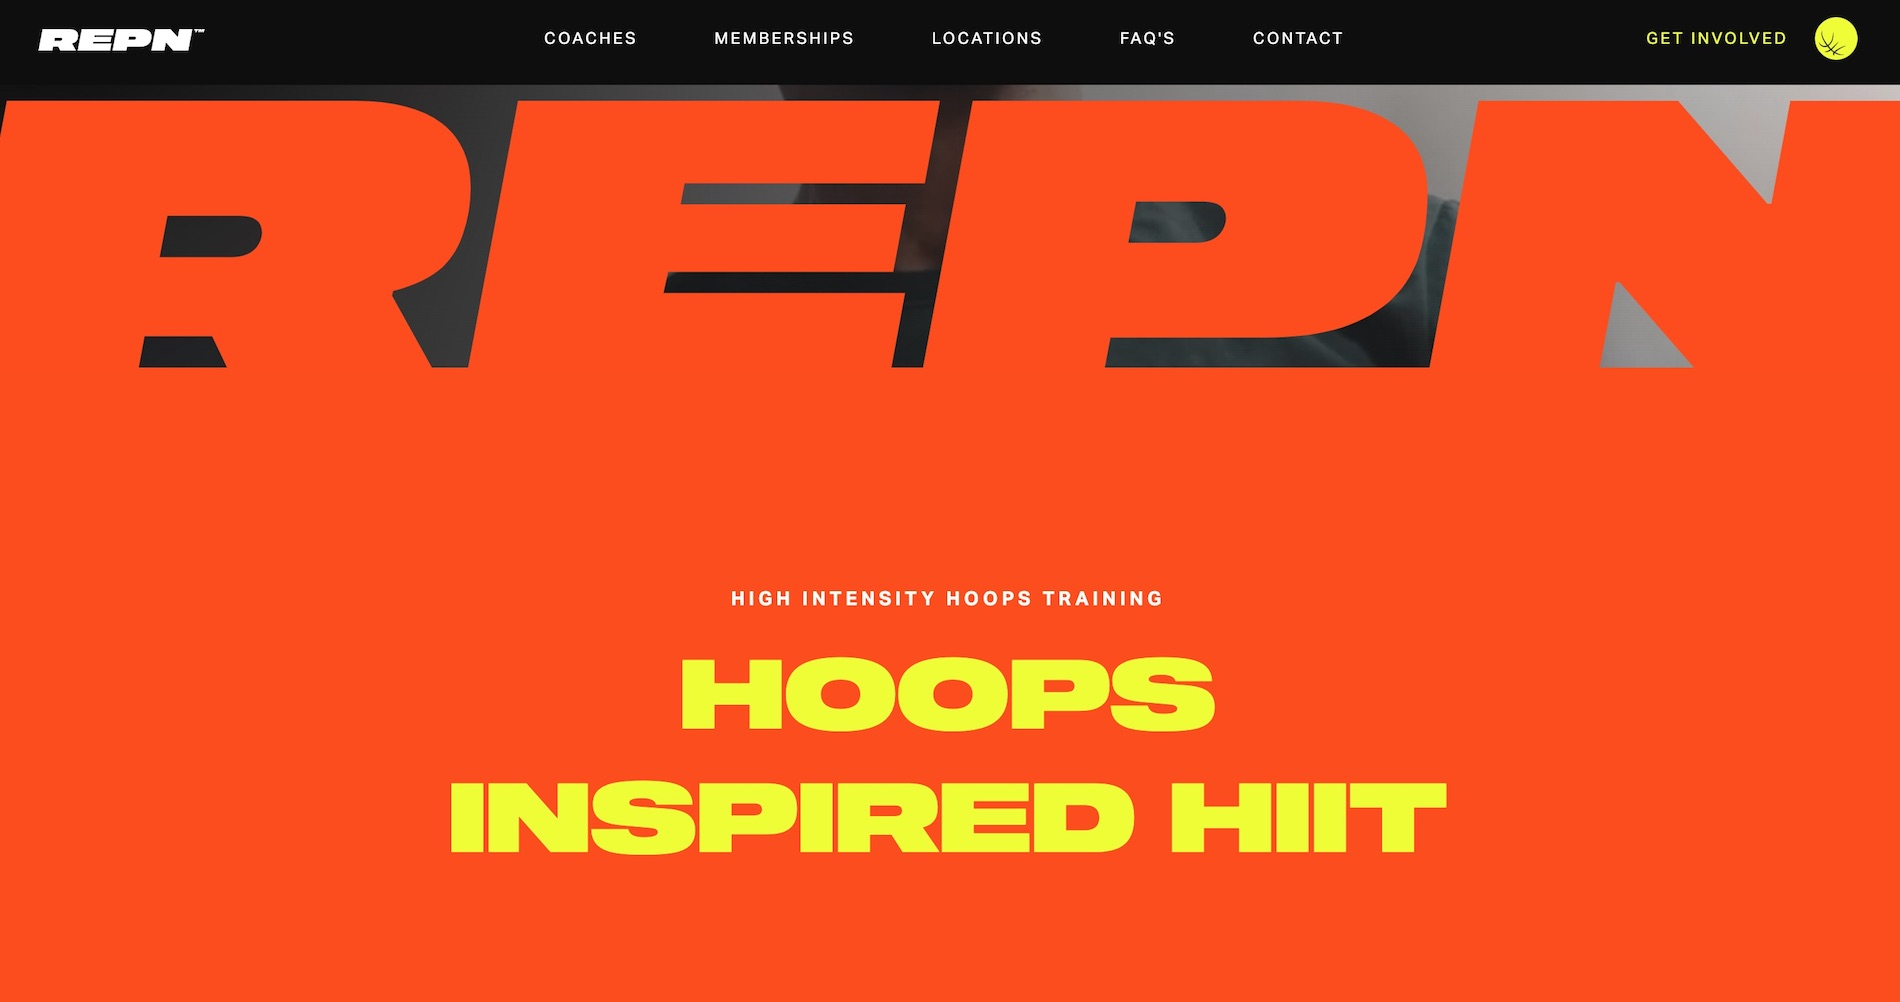 Journey Digital launches new technology platform for REPN – High Intensity Hoops